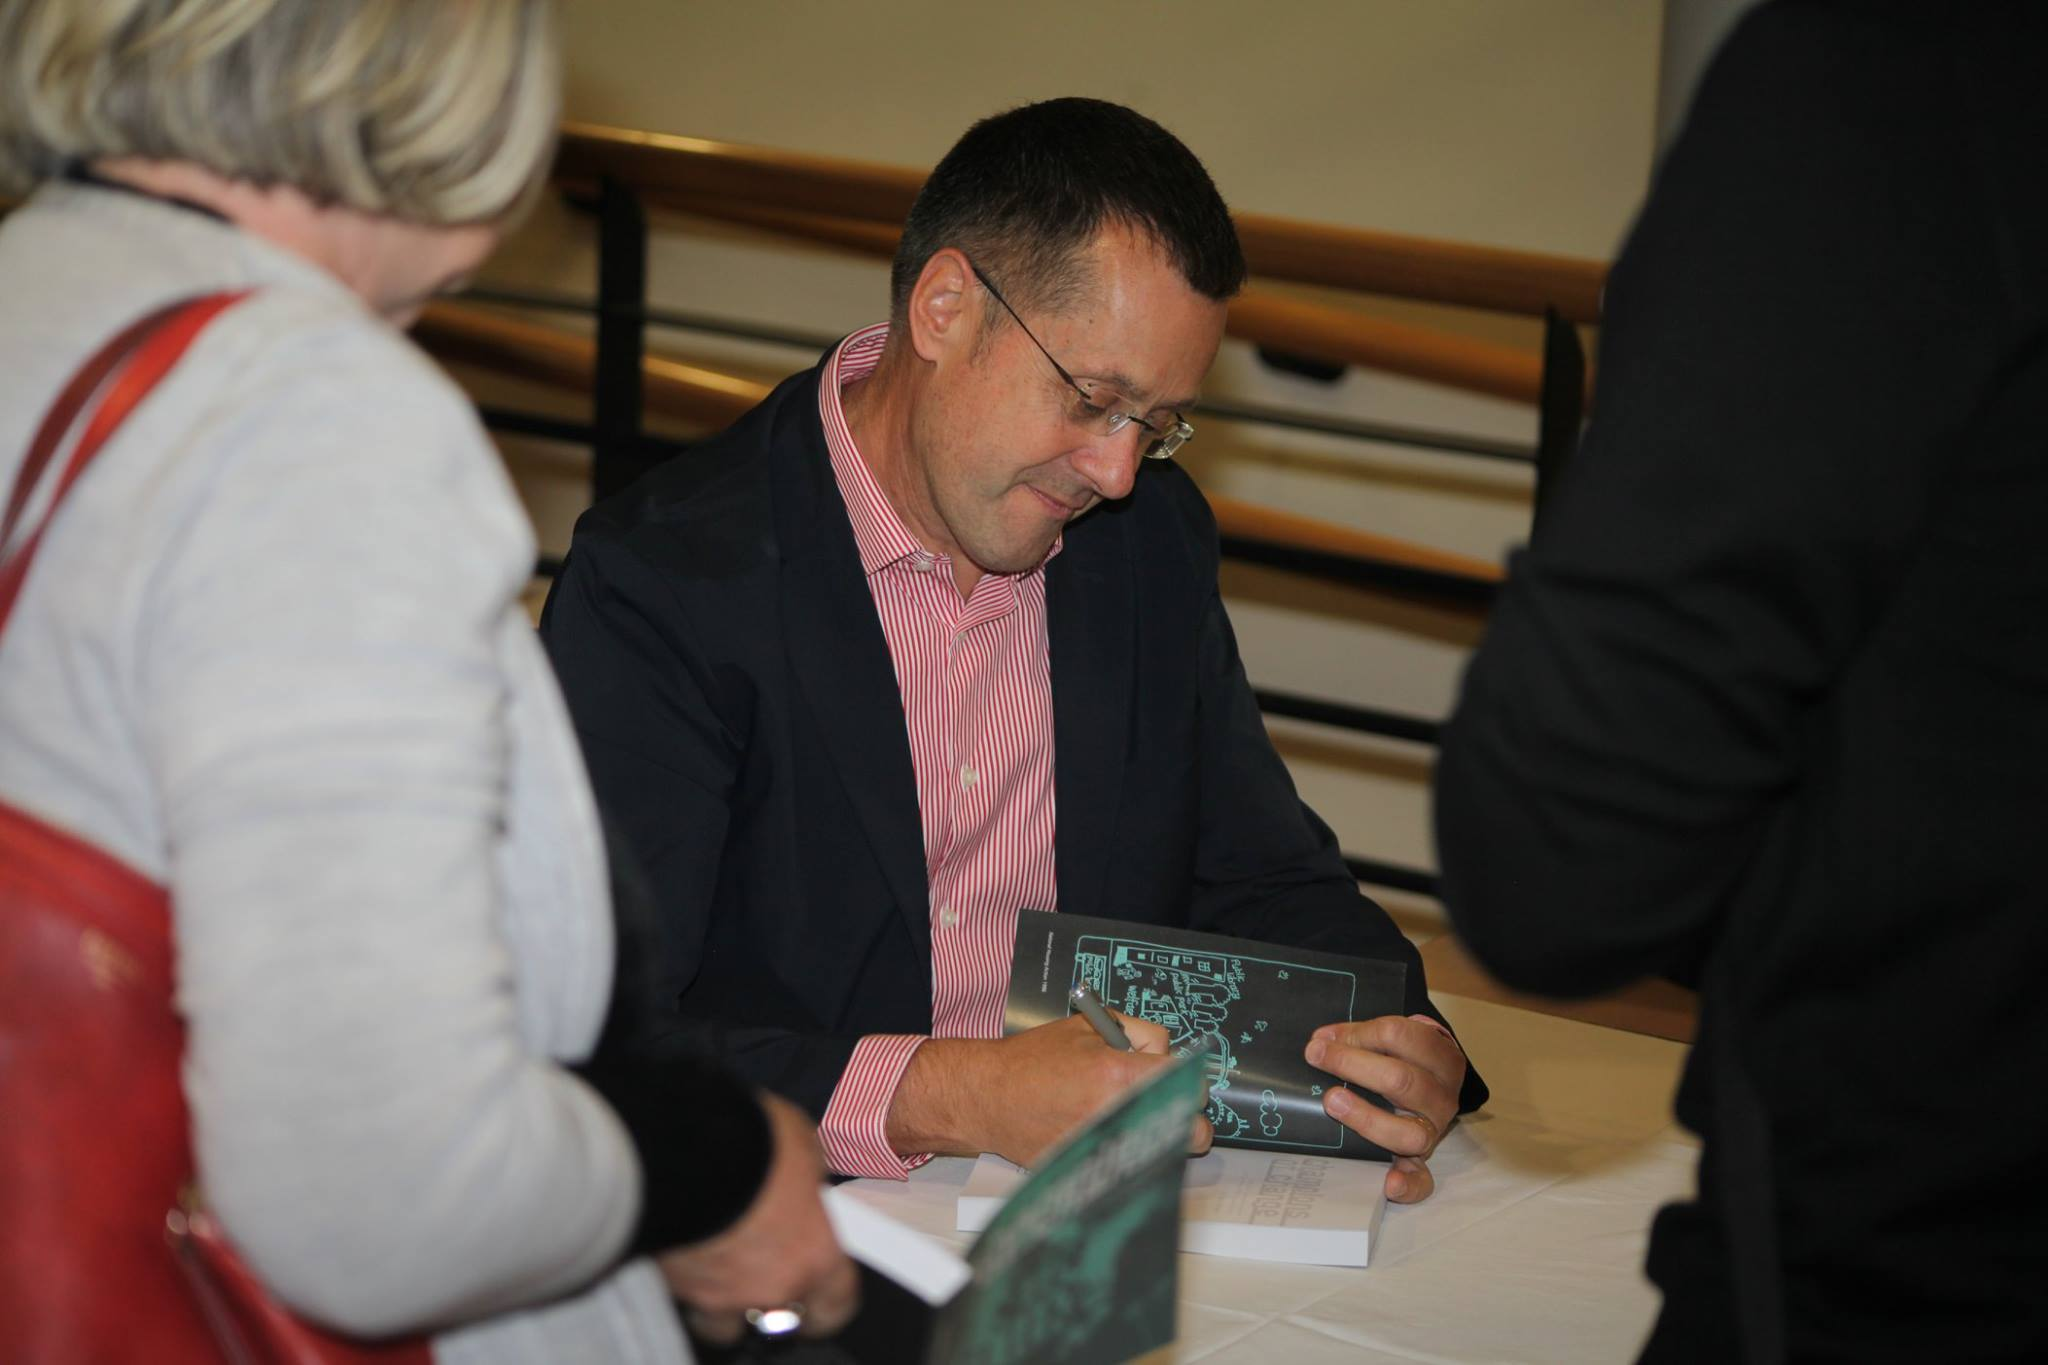 2018-09-10  Book launch 19.jpg